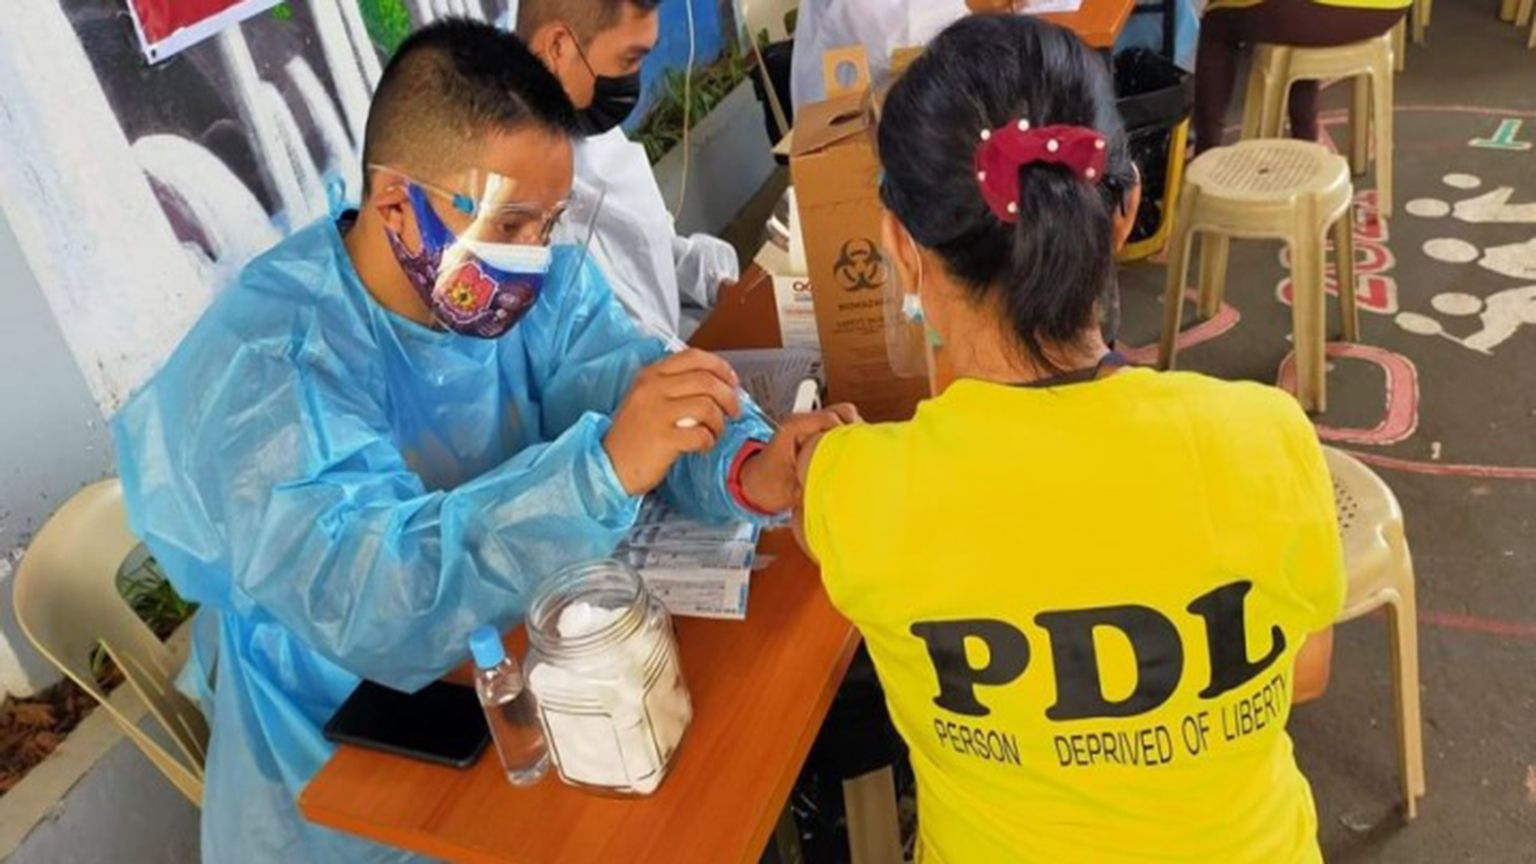 They need protection, too BJMP asks LGUs to include inmates in vax program photo from PNA